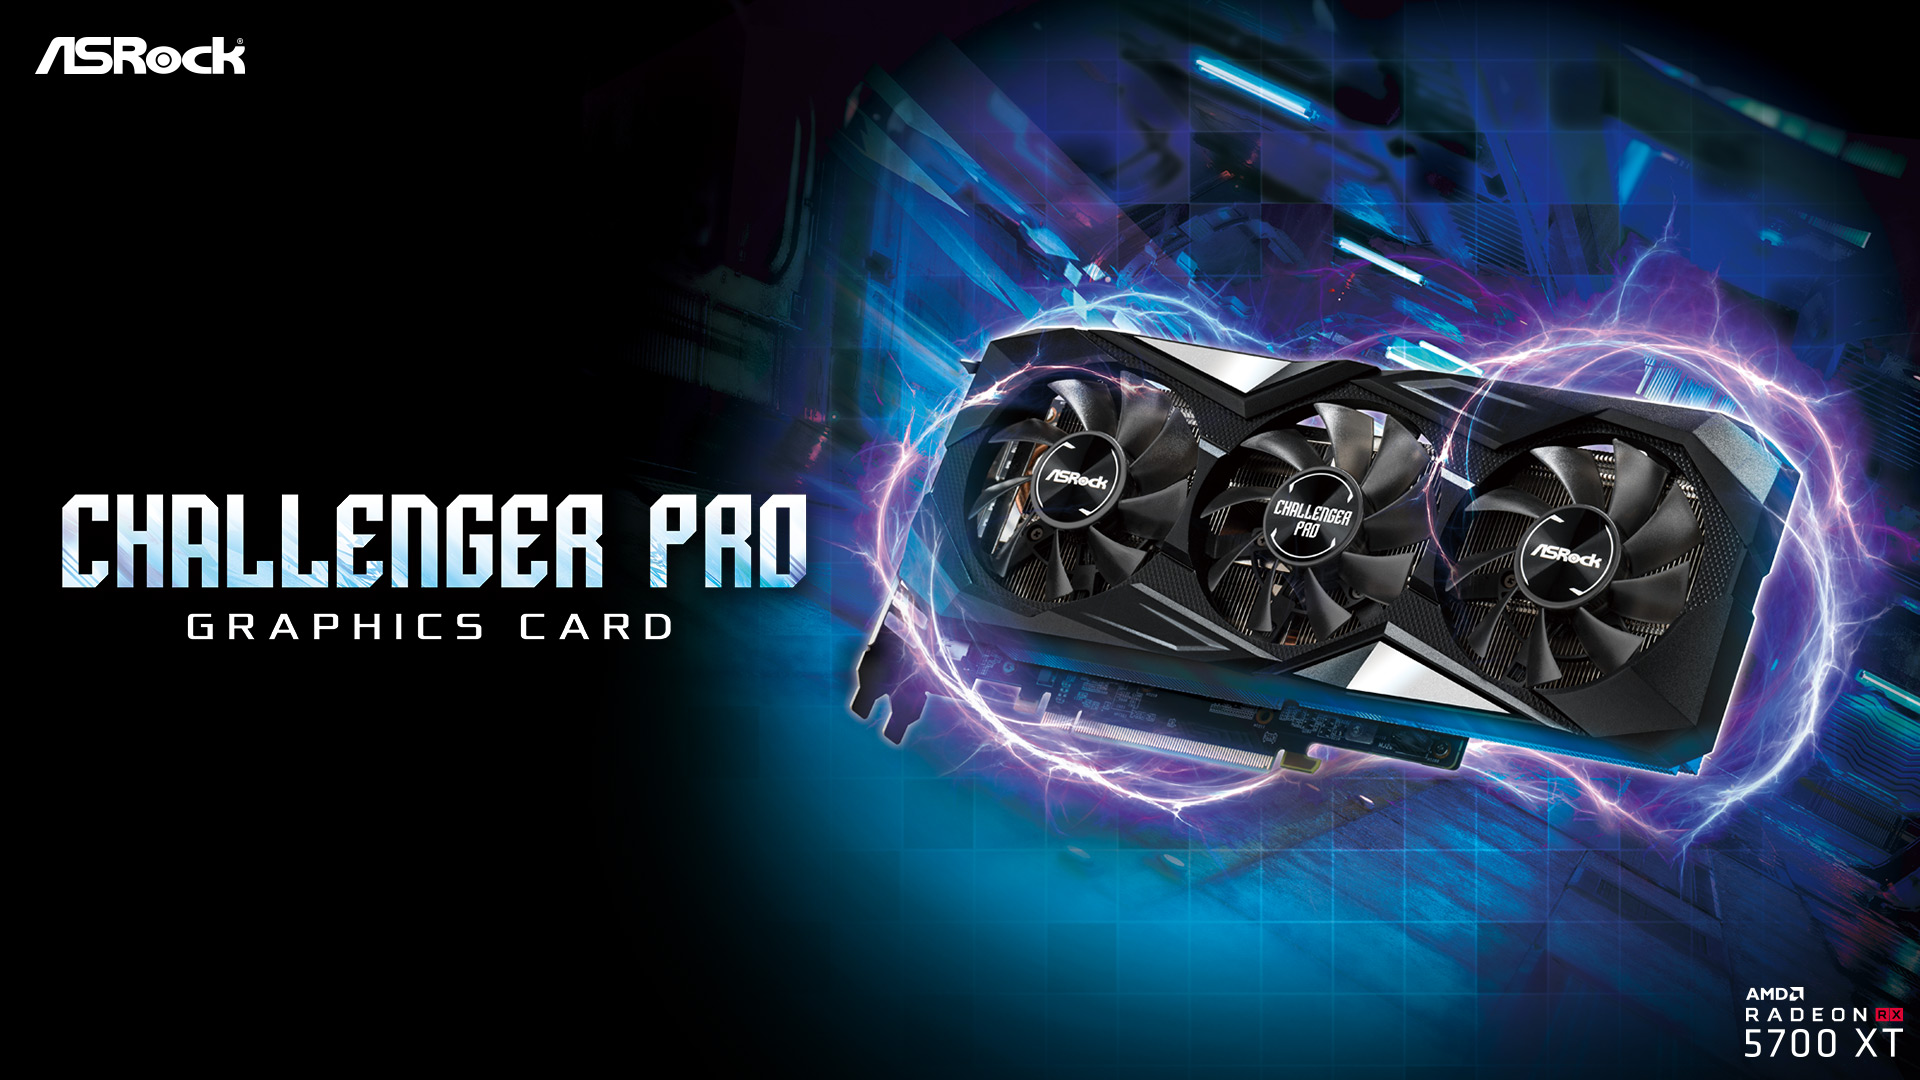 ASRock Releases The Radeon RX 5700 XT Challenger Pro 8G OC With A Triple Fan Cooler And 8GB's Of GDDR6 Memory - Wccftech